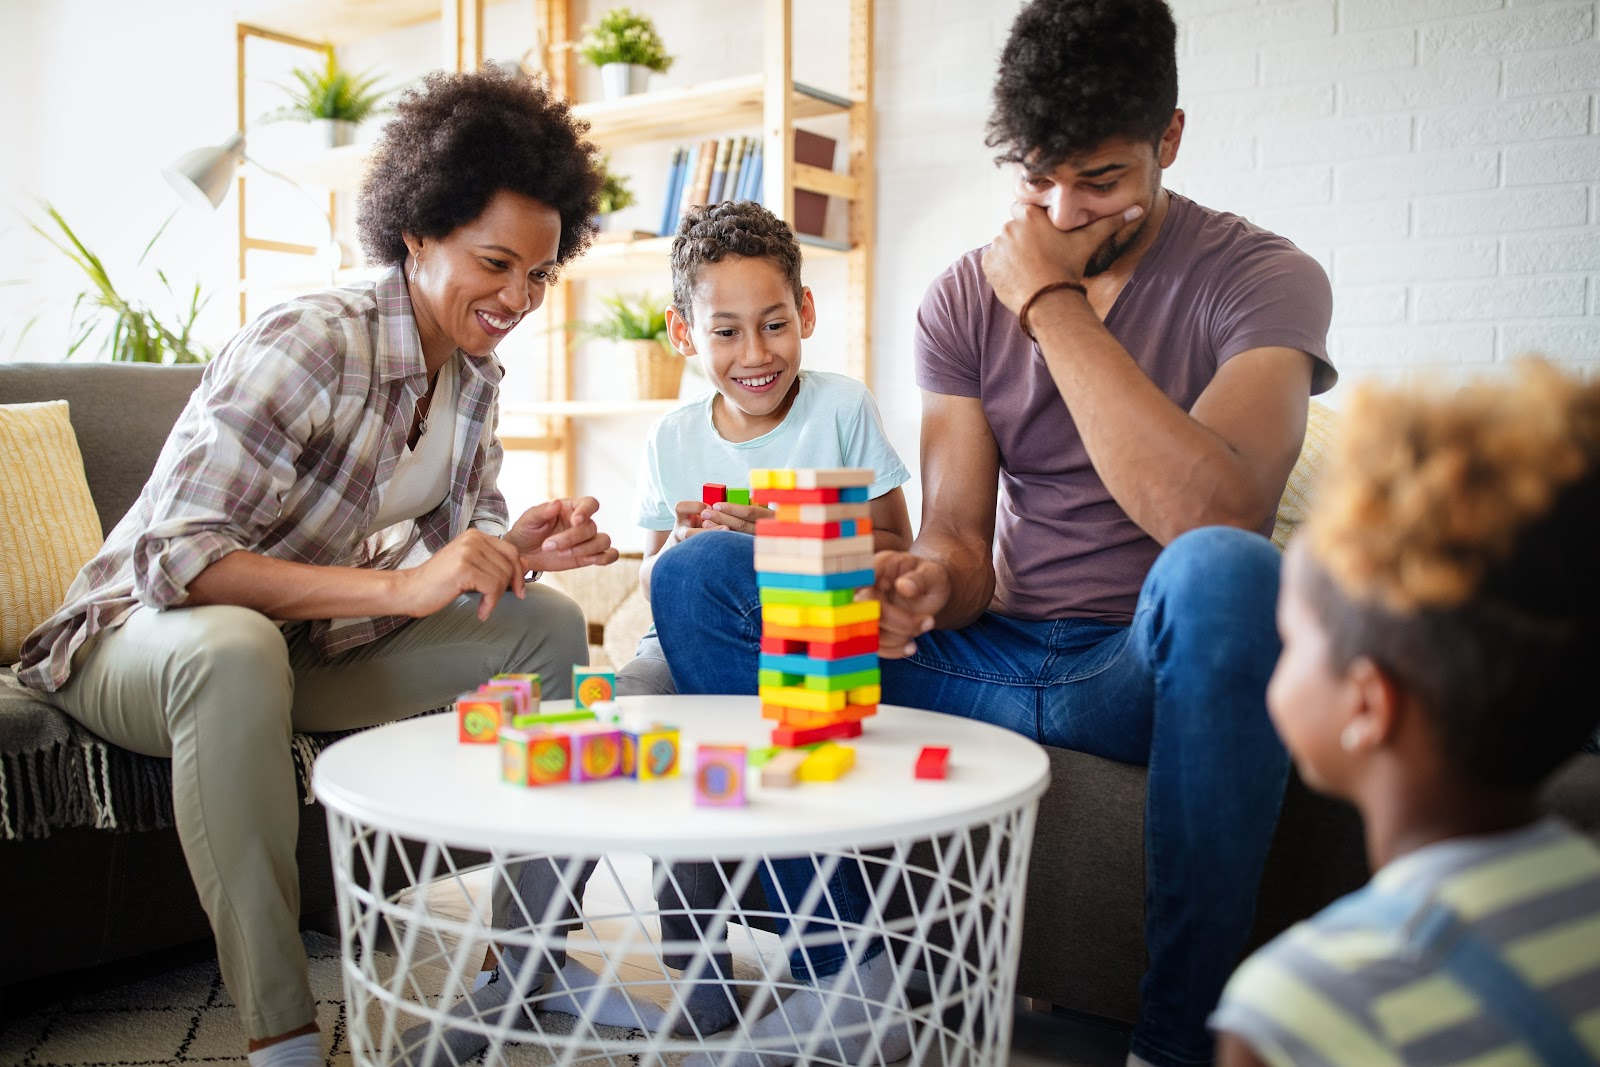 A family gathered around a coffee table playing Jenga.